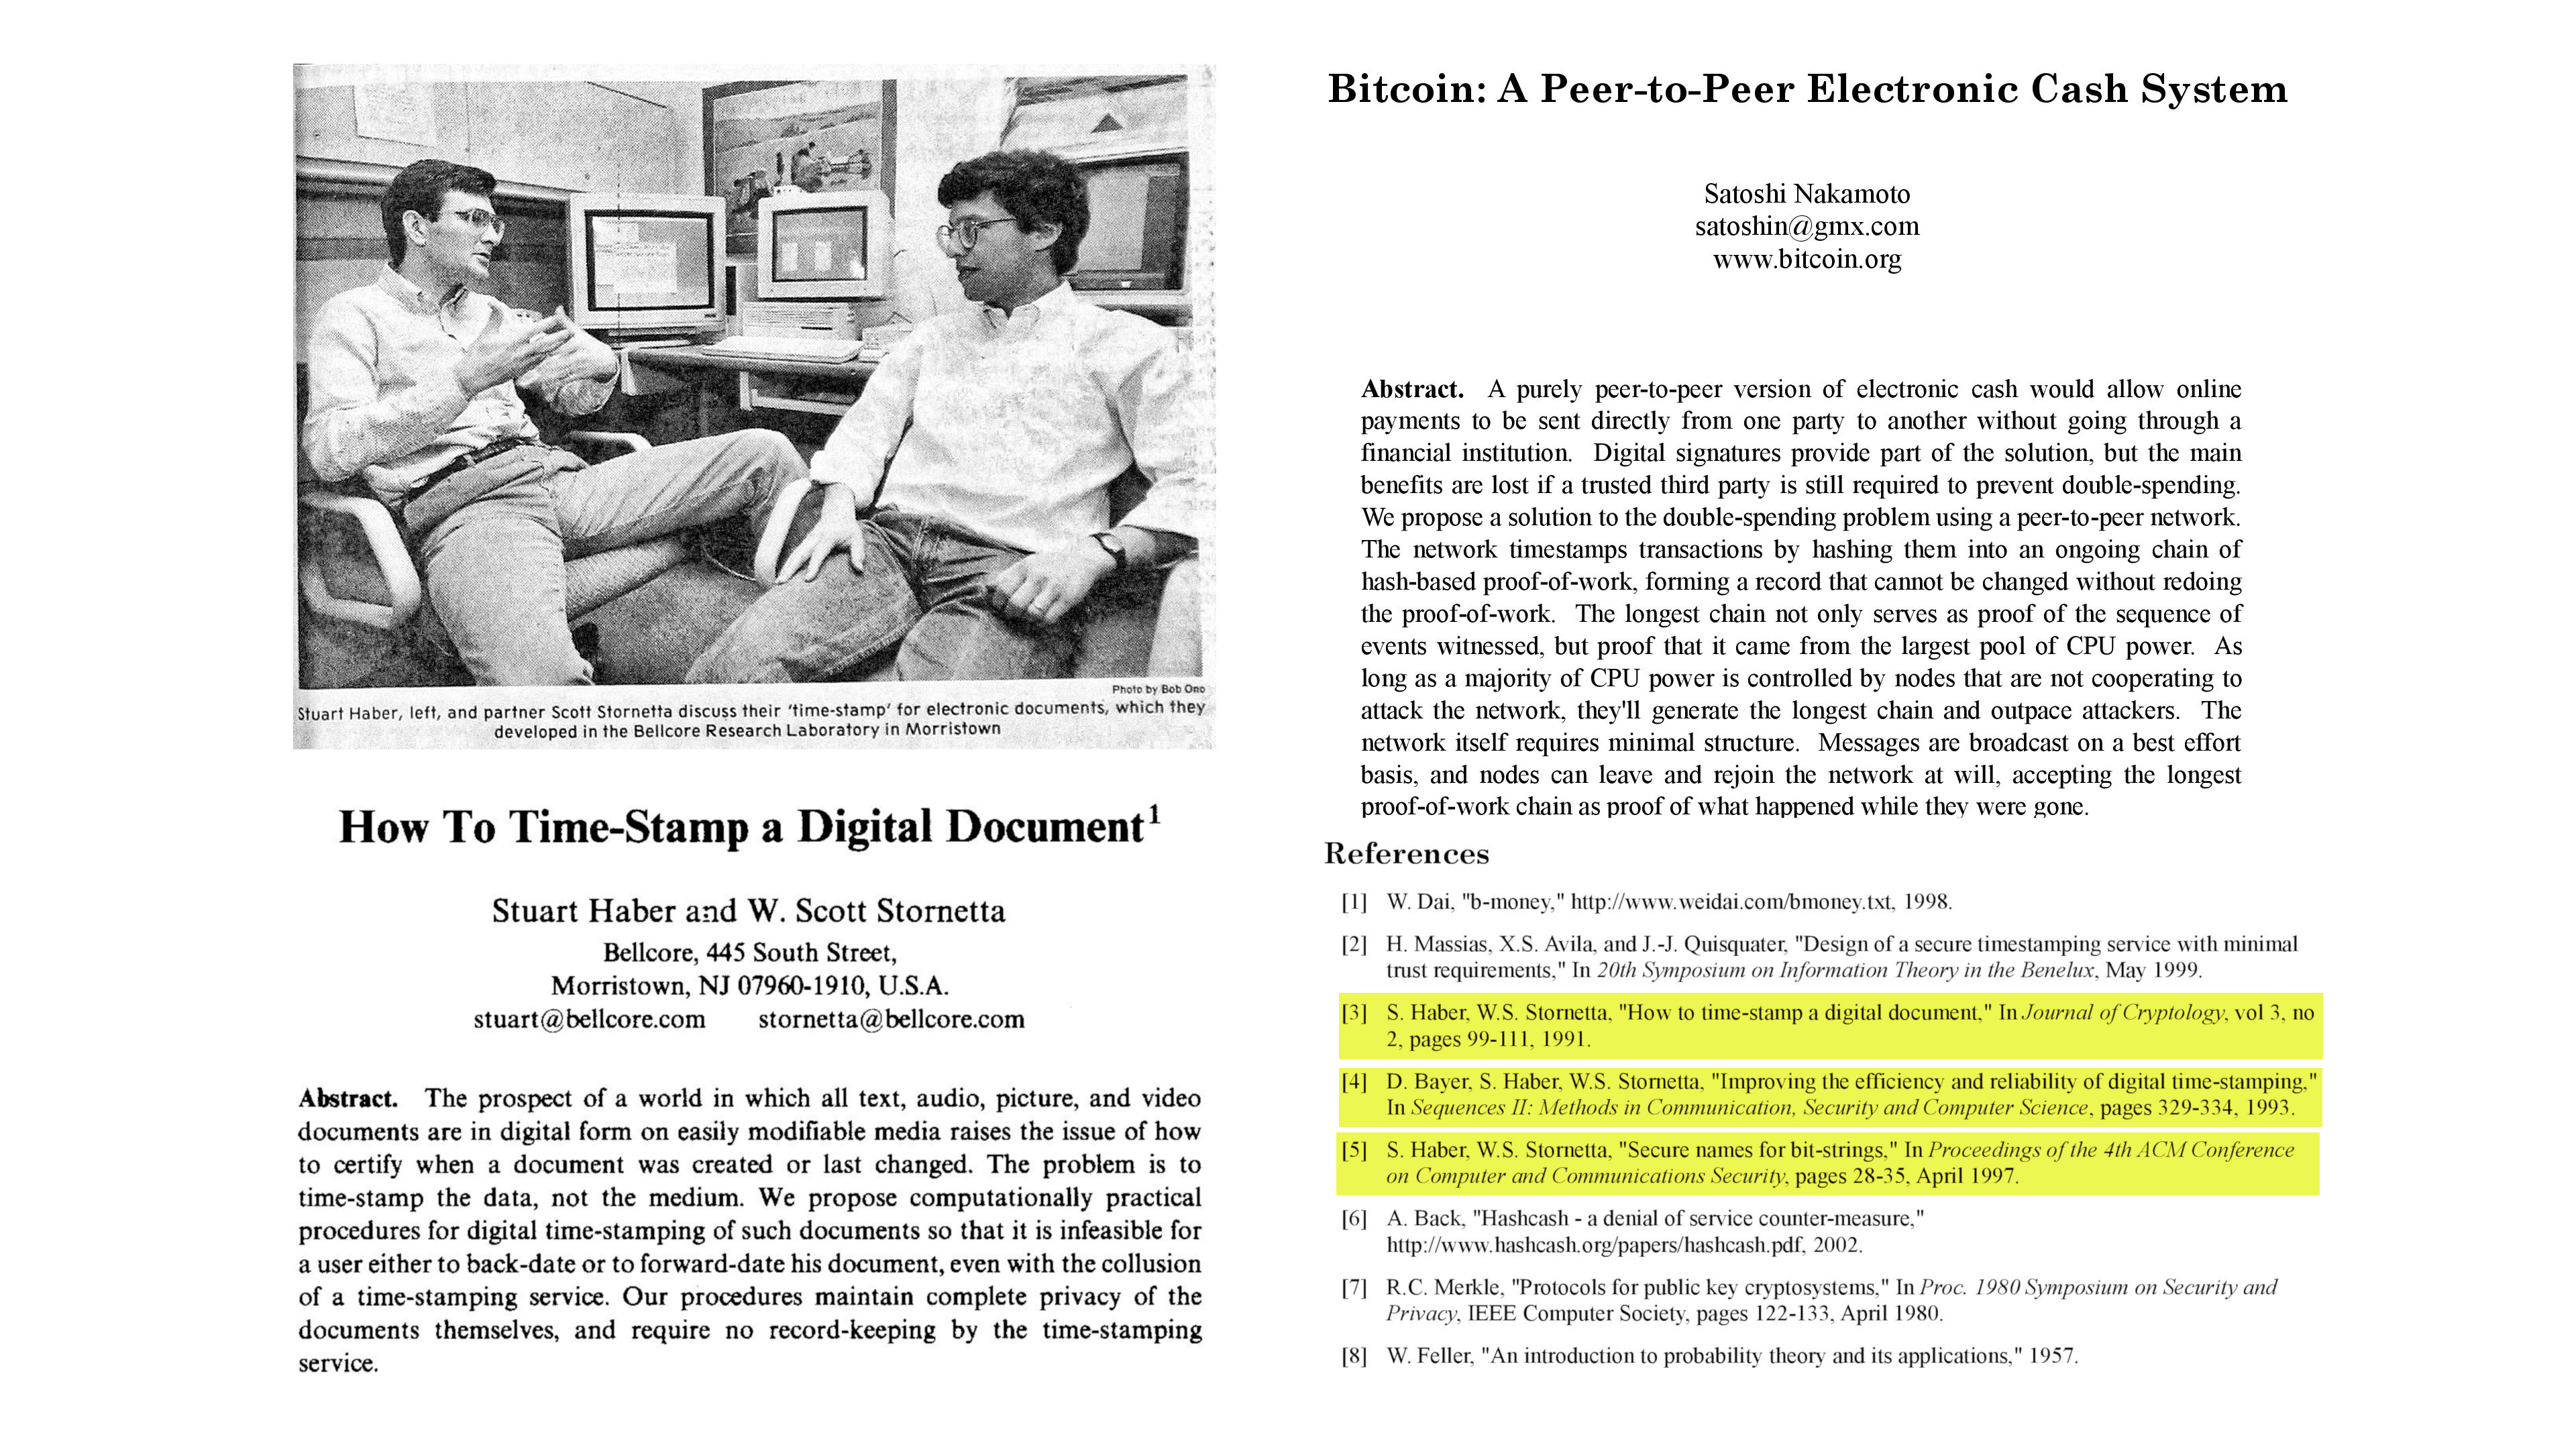 Composite image showing bitcoin paper, time stamping paper, and image of Scott Stornetta and Stuart Haber